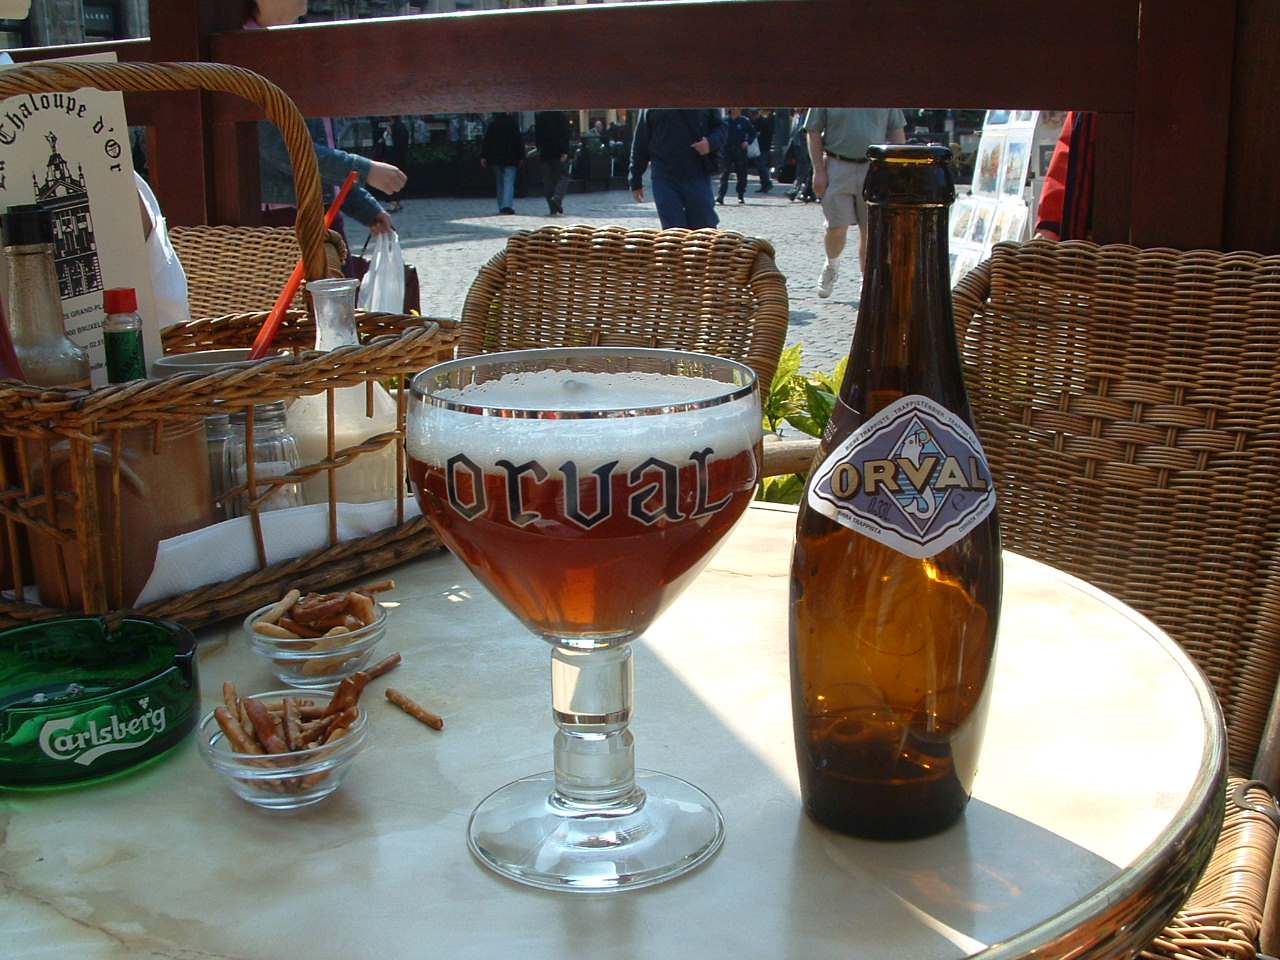 Belgium beer via morguefile